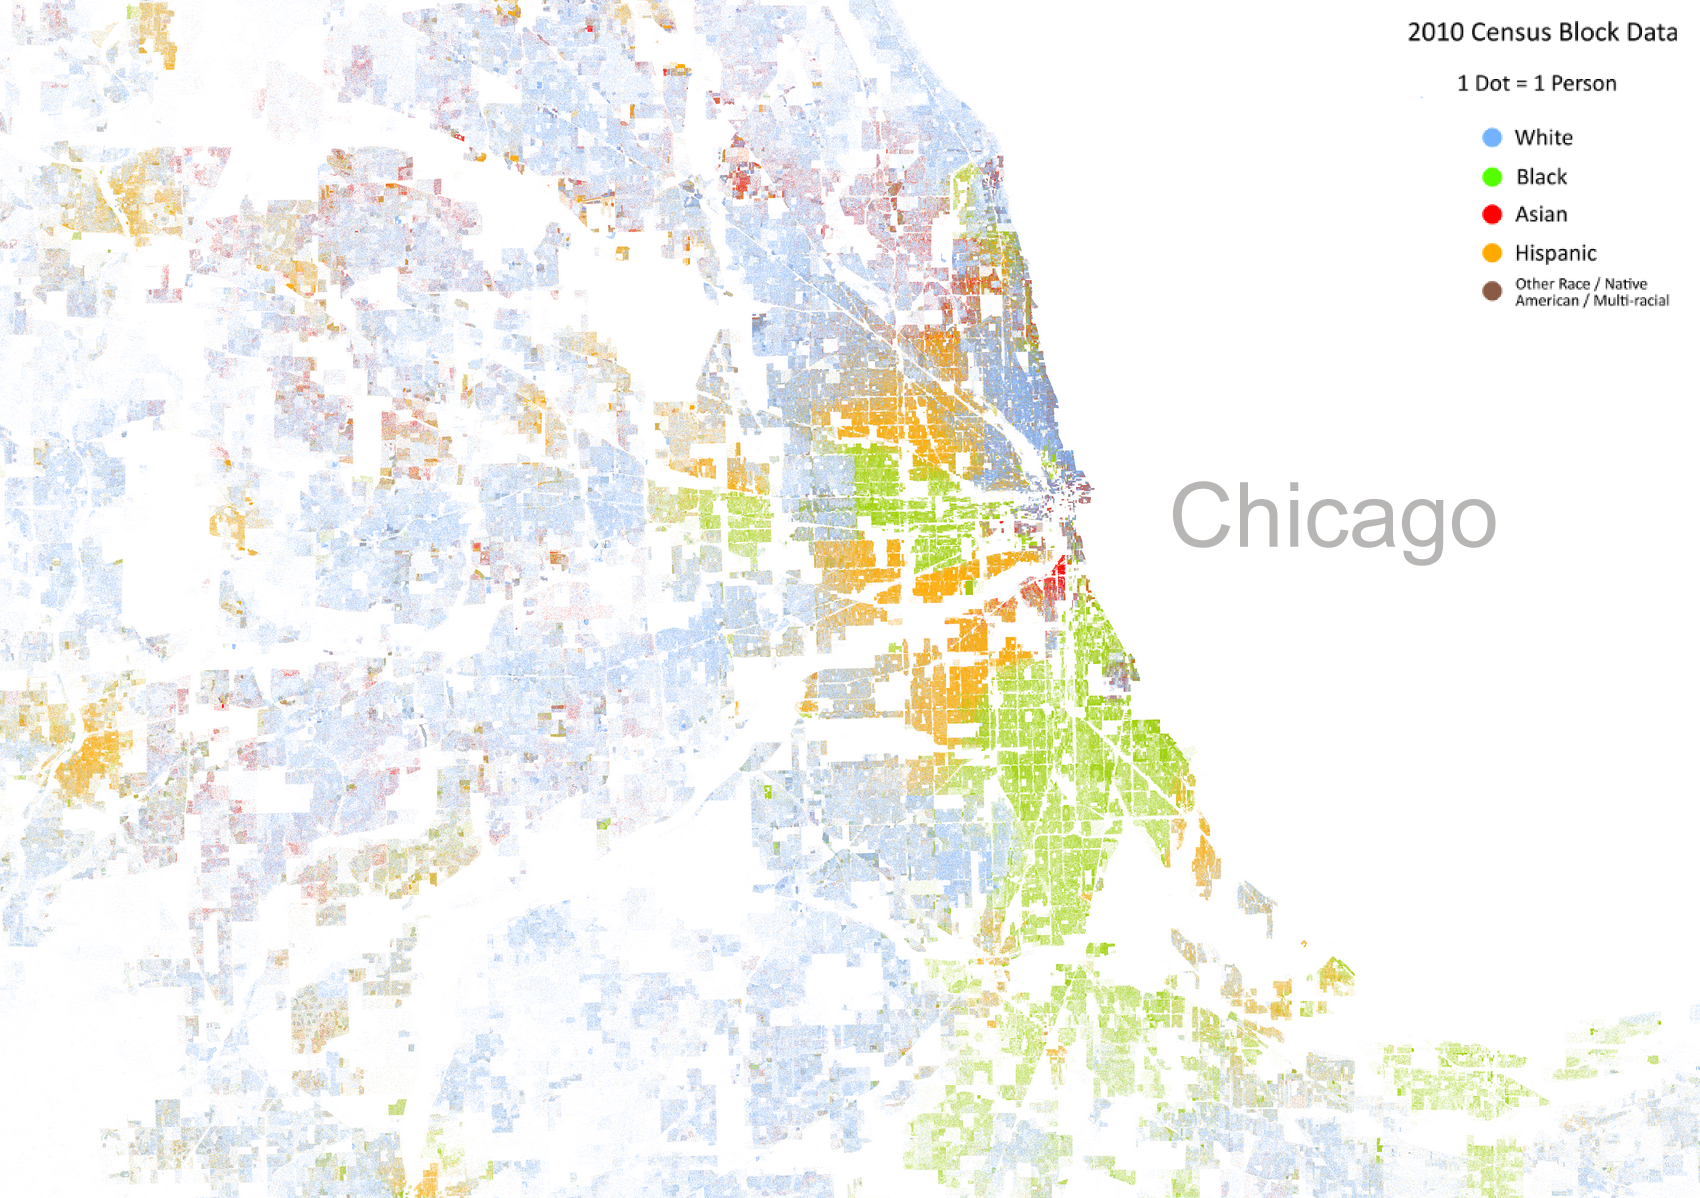 silver-segregation-chicago-dot